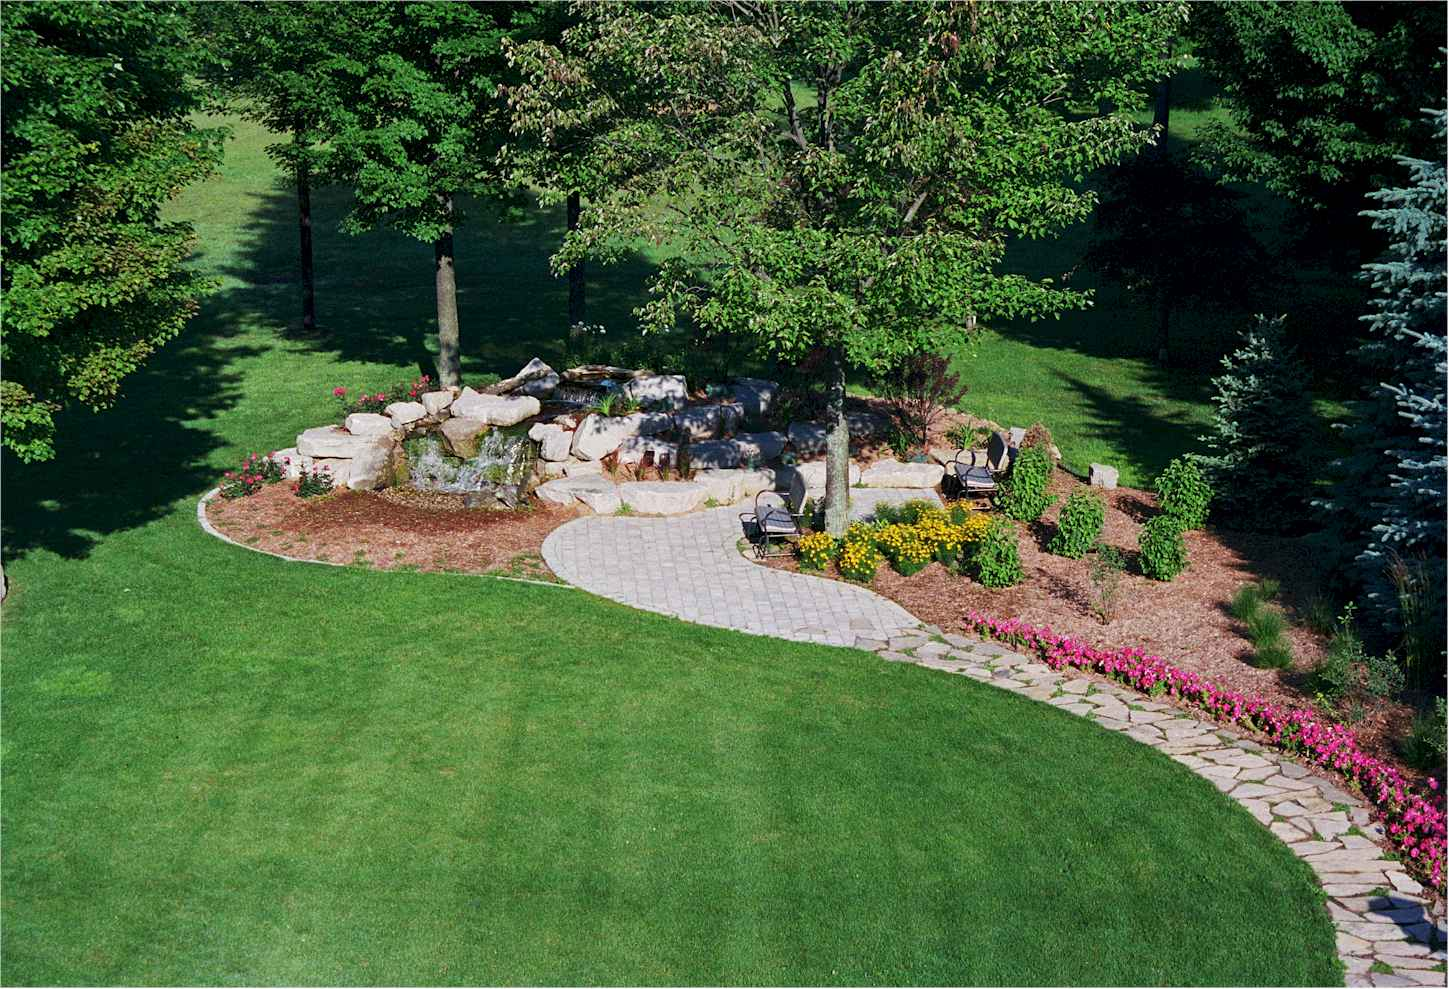 5 landscaping ideas to wow the neighbors for Pictures of landscaping ideas